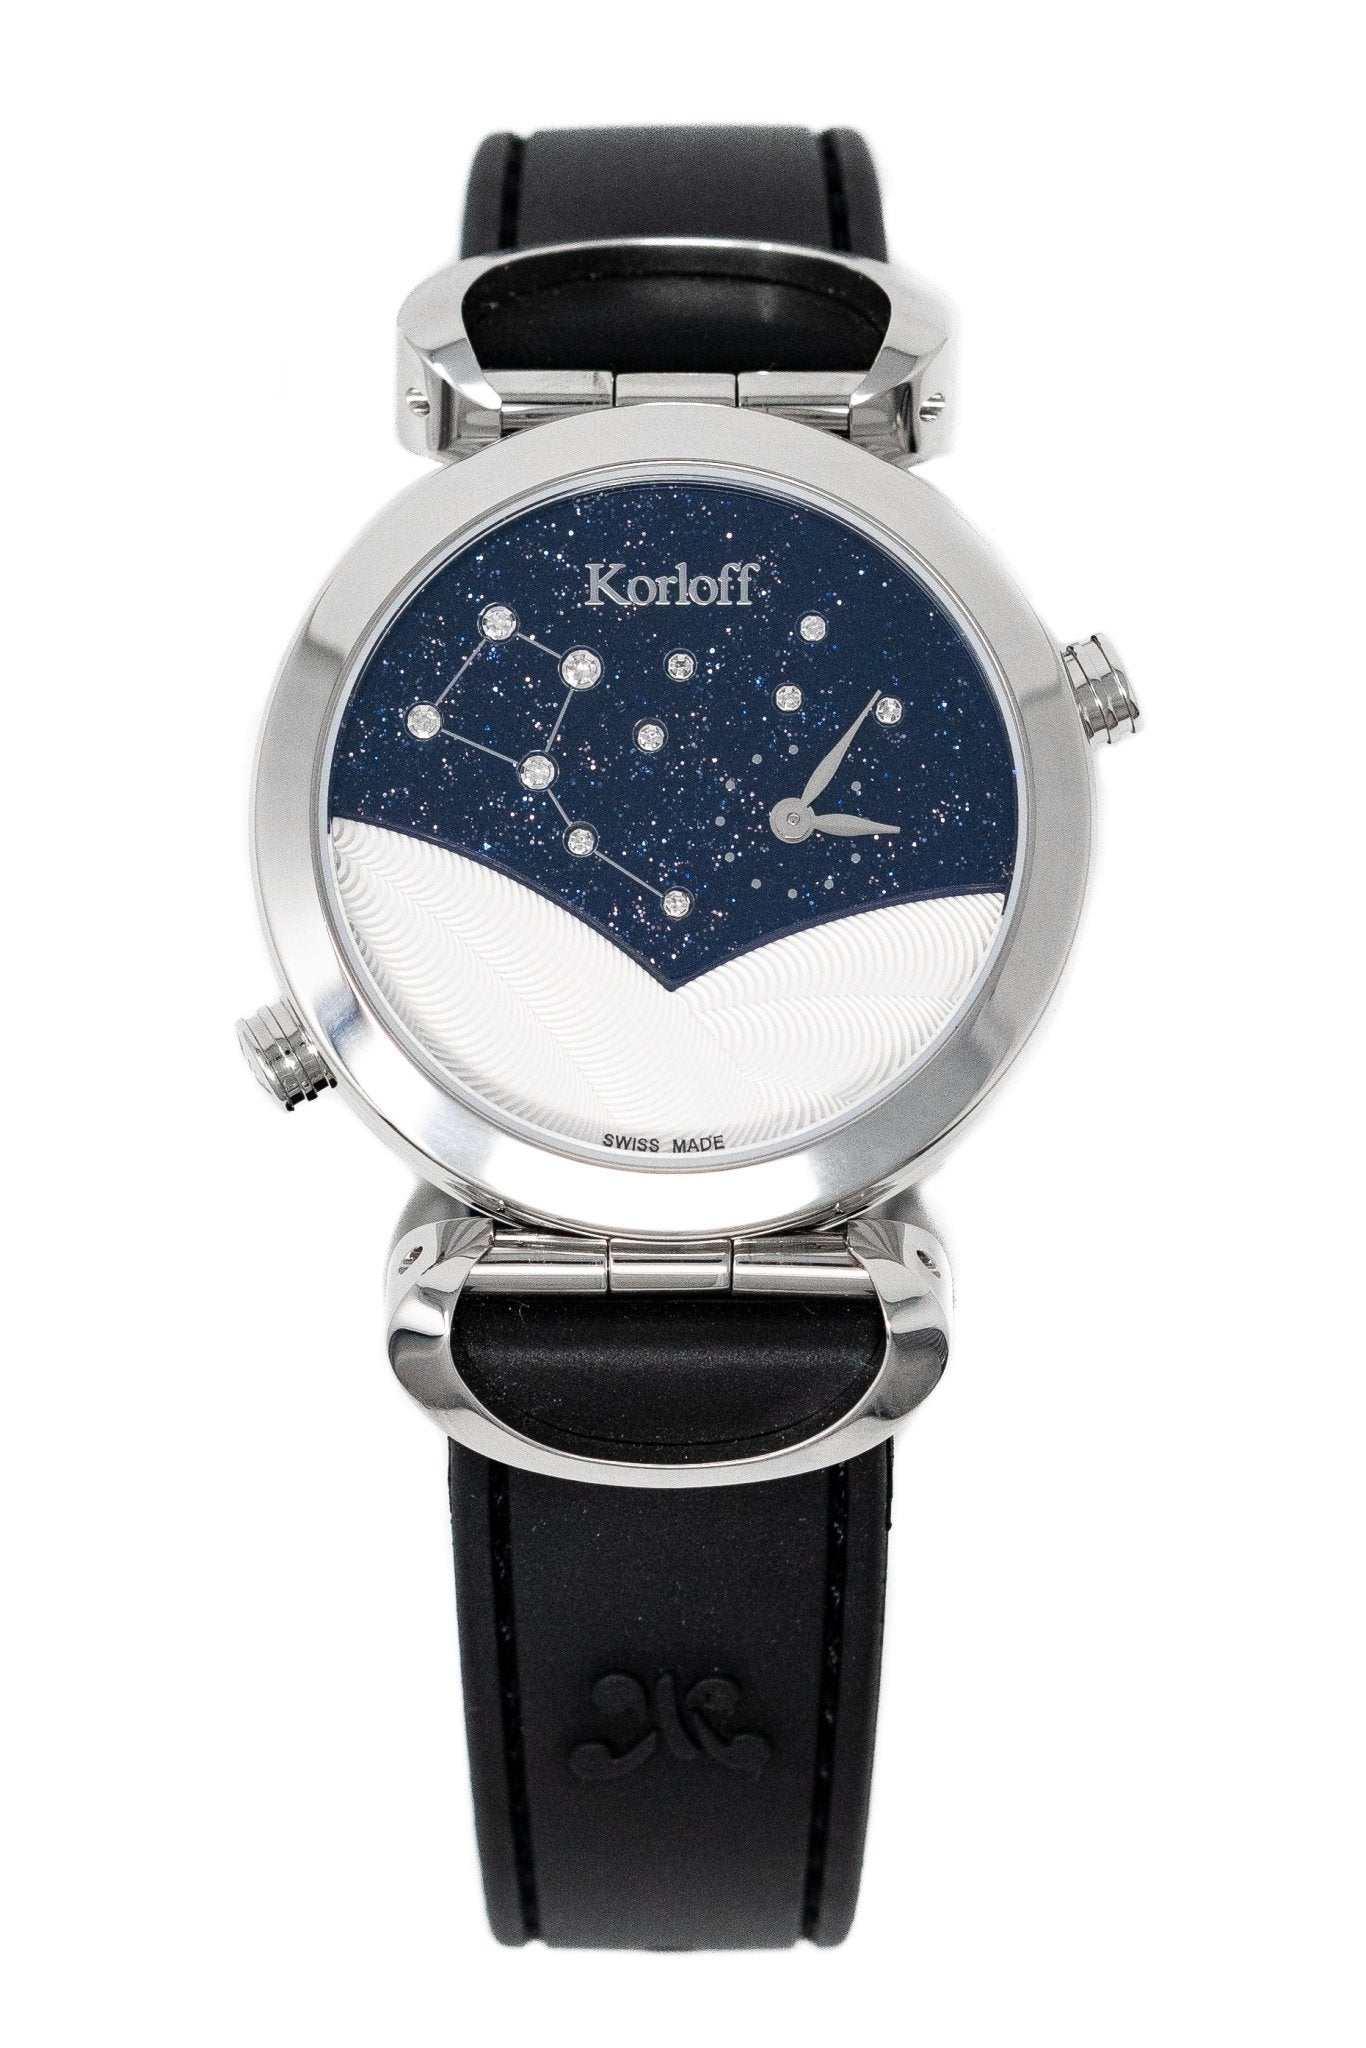 Korloff Reversible GMT Diamond Watch - Watches & Crystals